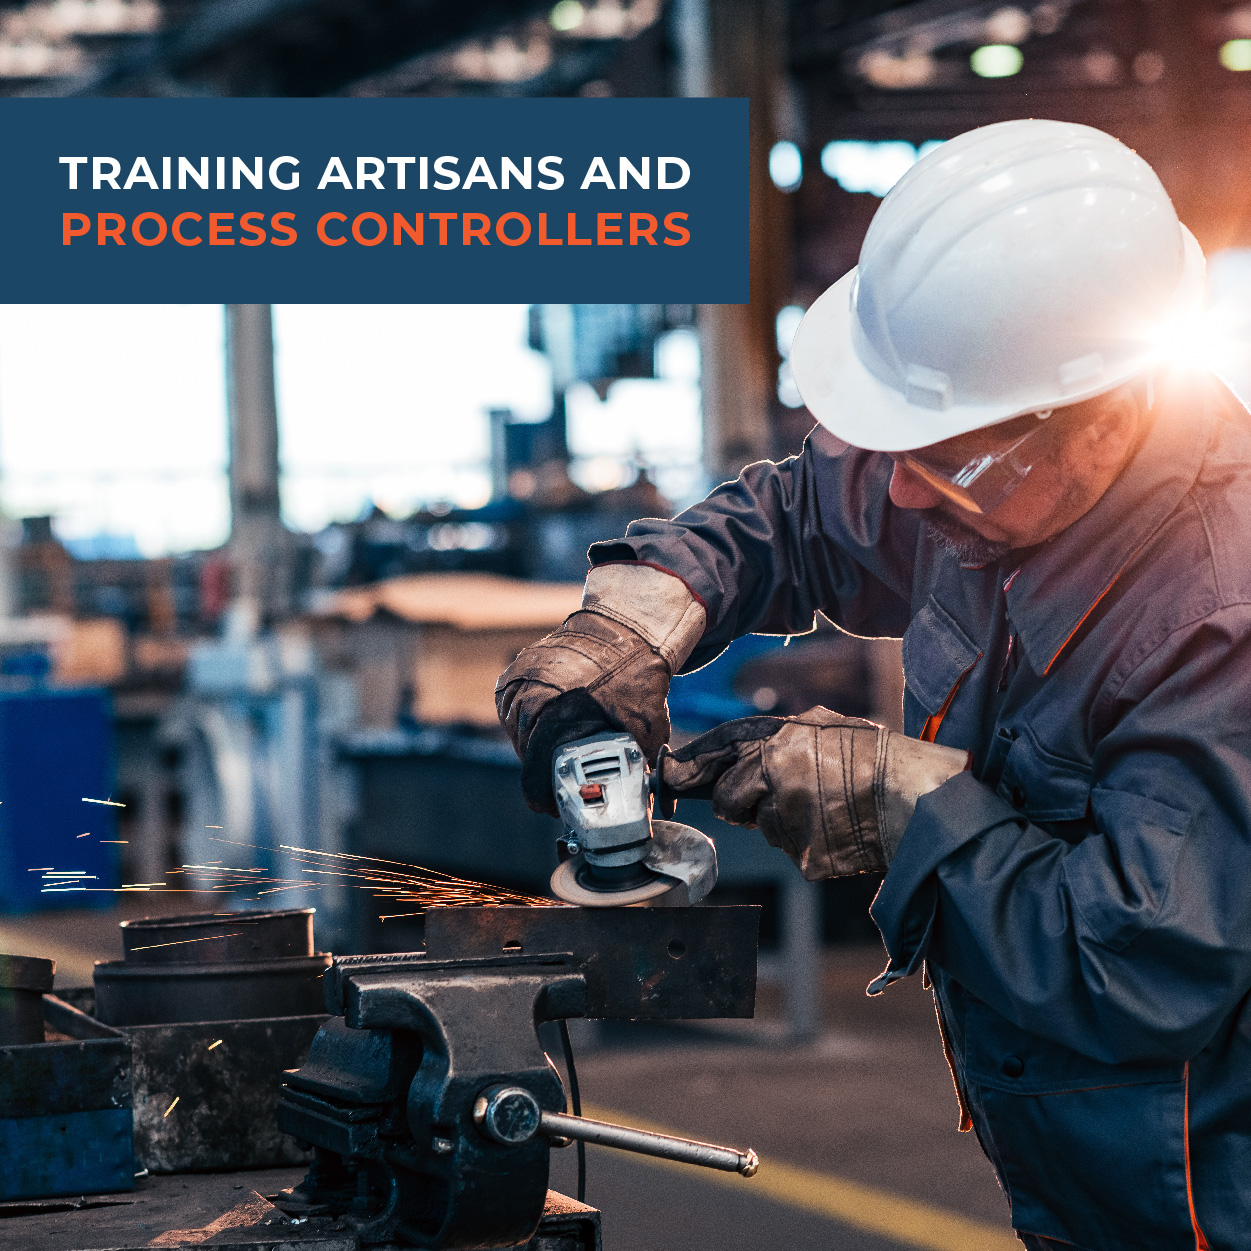 Training Artisans and Process Controllers